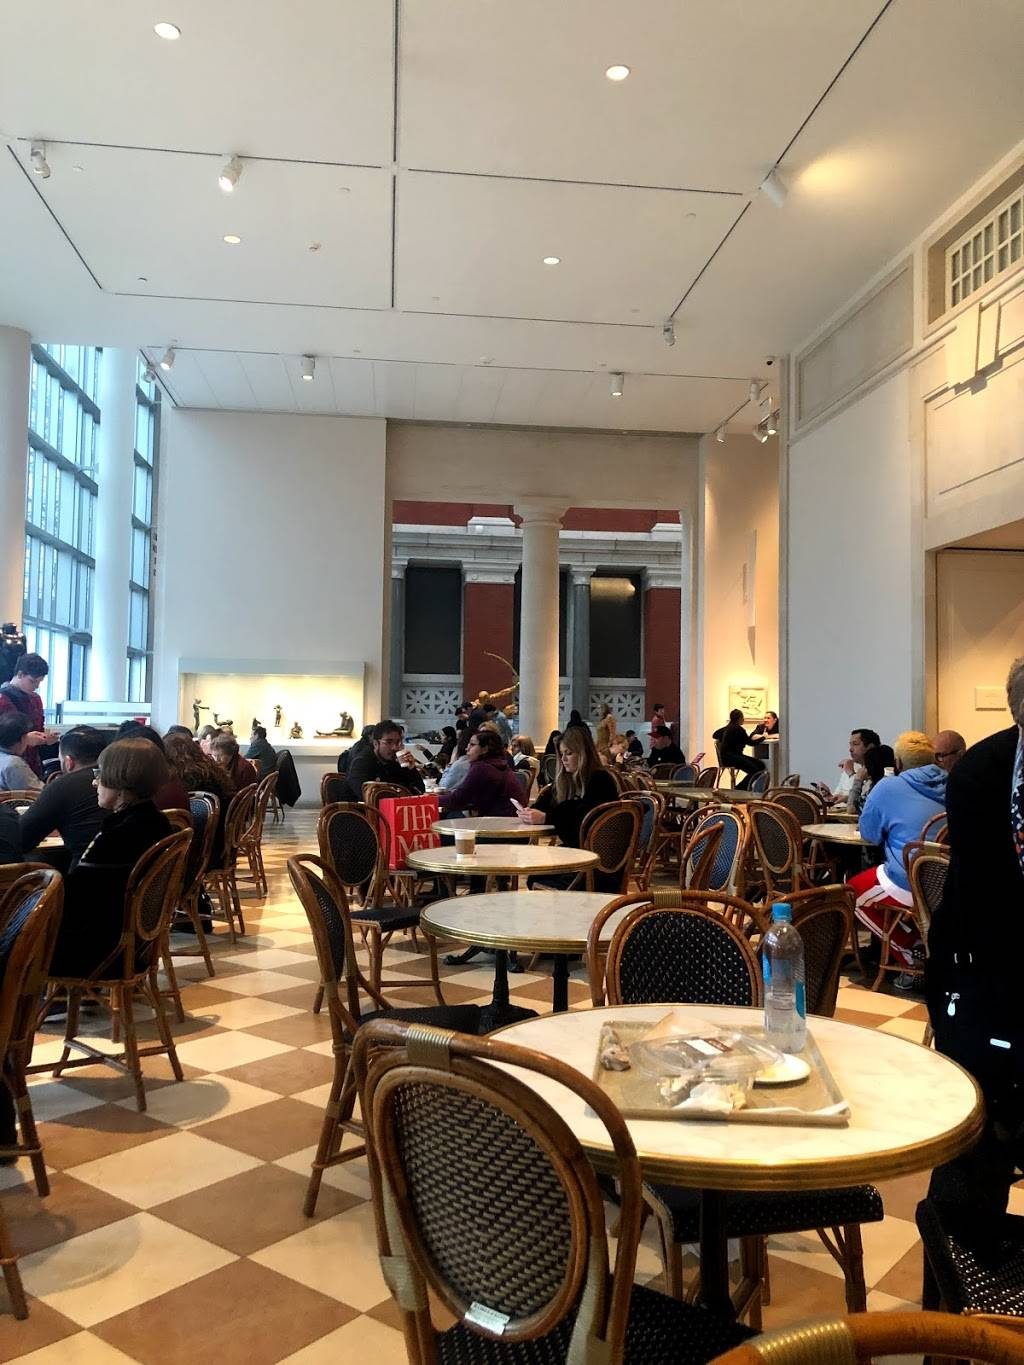 Petrie Court | cafe | 1000 5th Ave, New York, NY 10028, USA | 2125703964 OR +1 212-570-3964